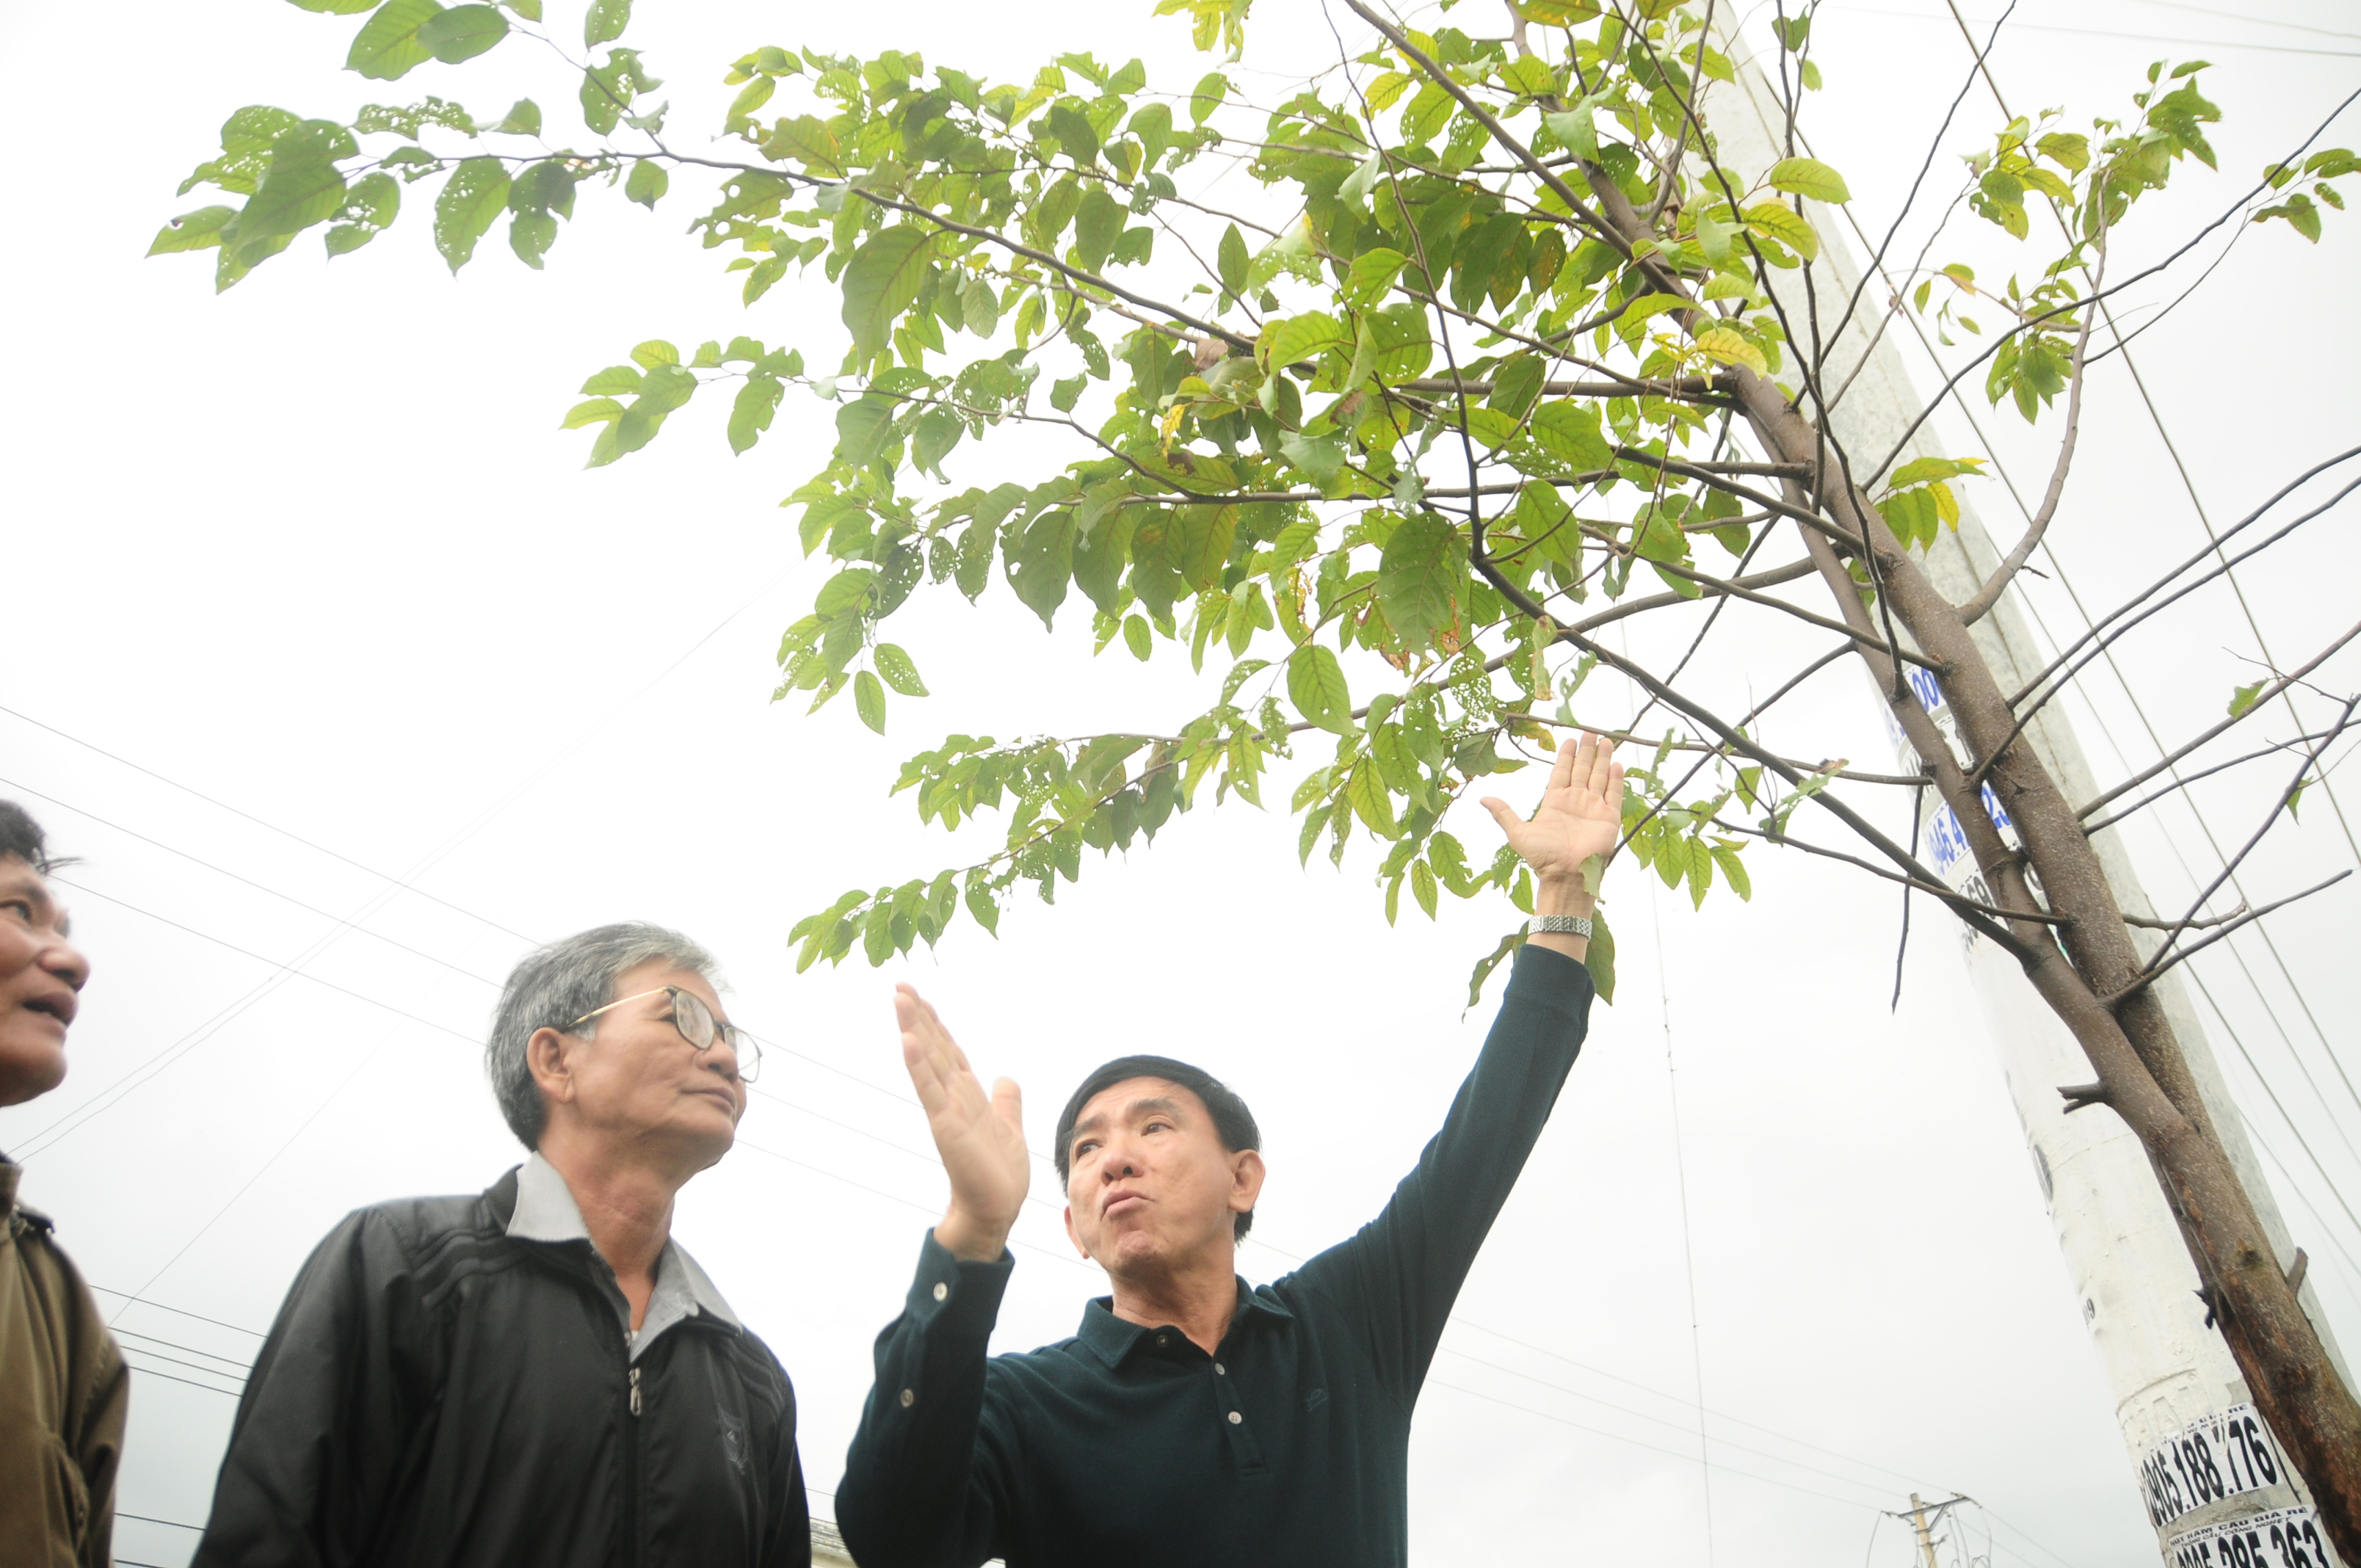 Seeds of hope: a former teacher's dream to plant one million trees in Vietnam